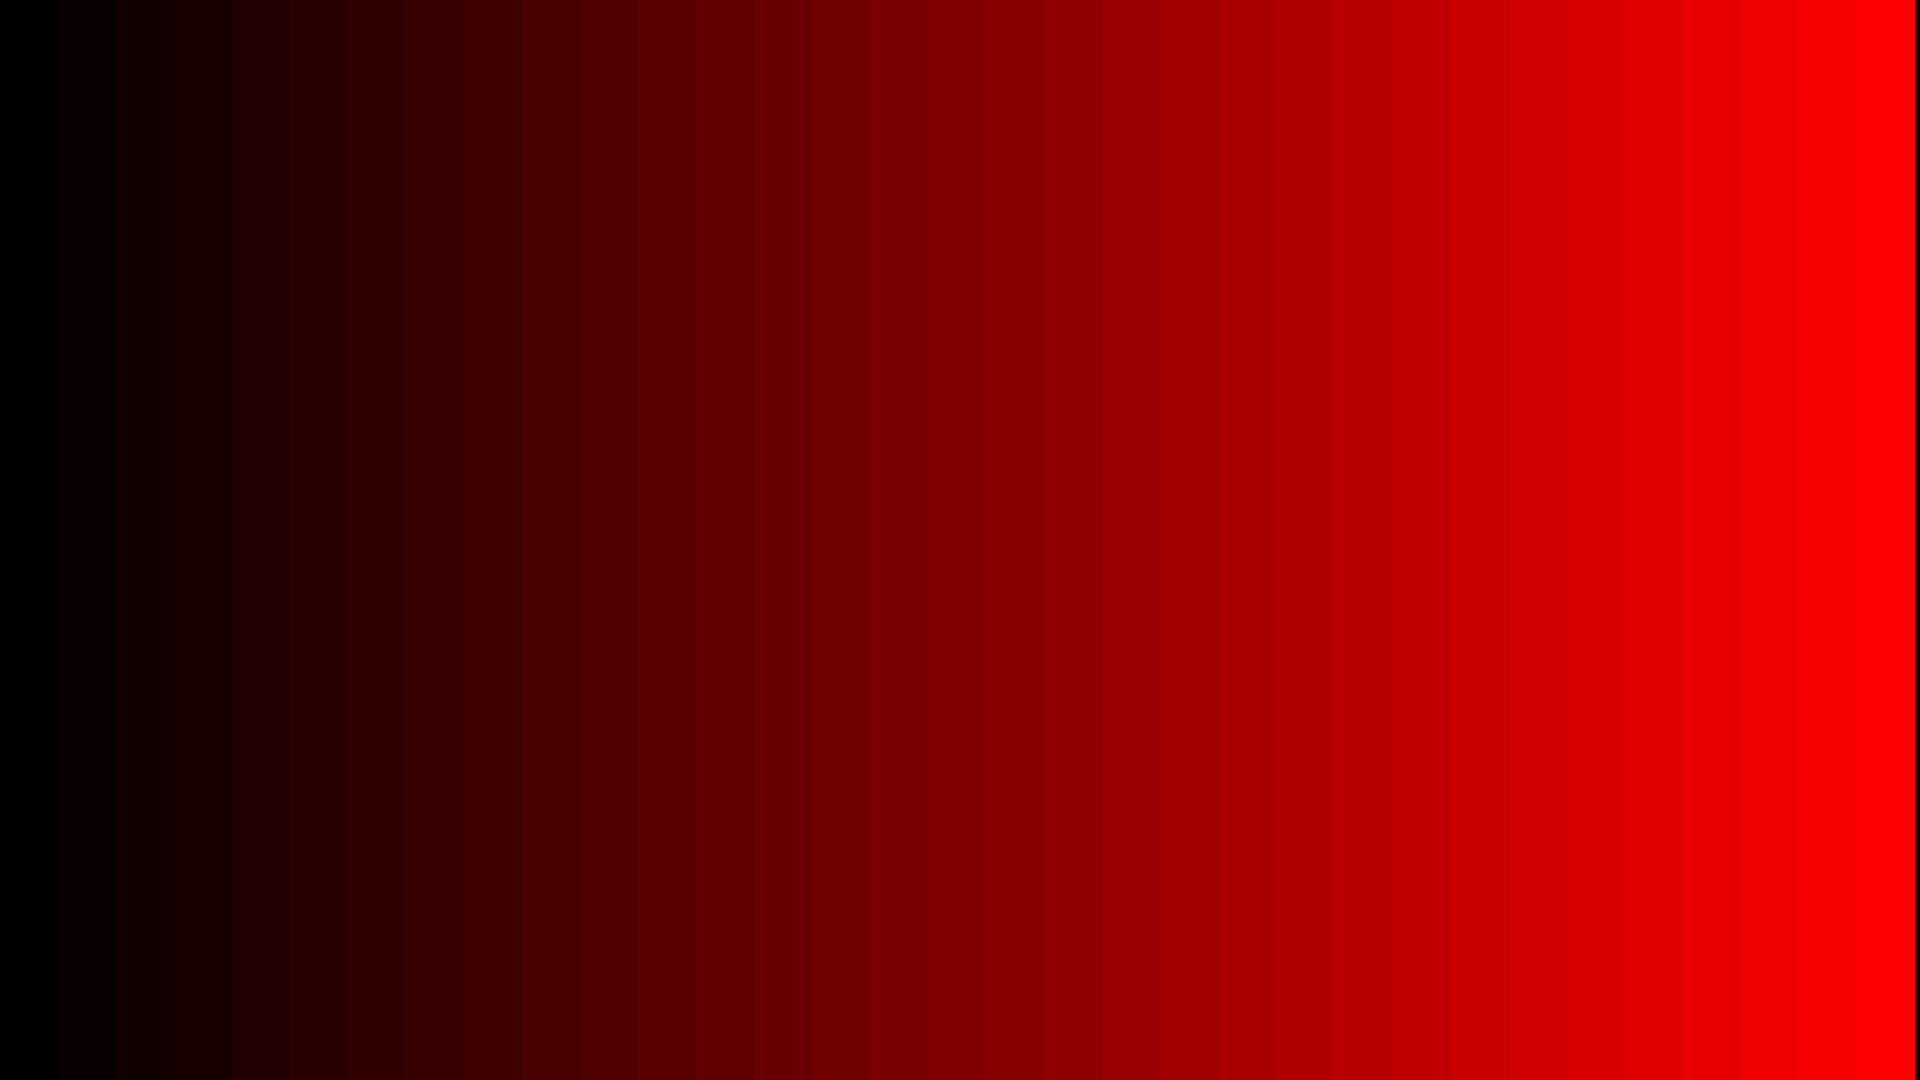 Red Gradient background ·① Download free cool HD ...